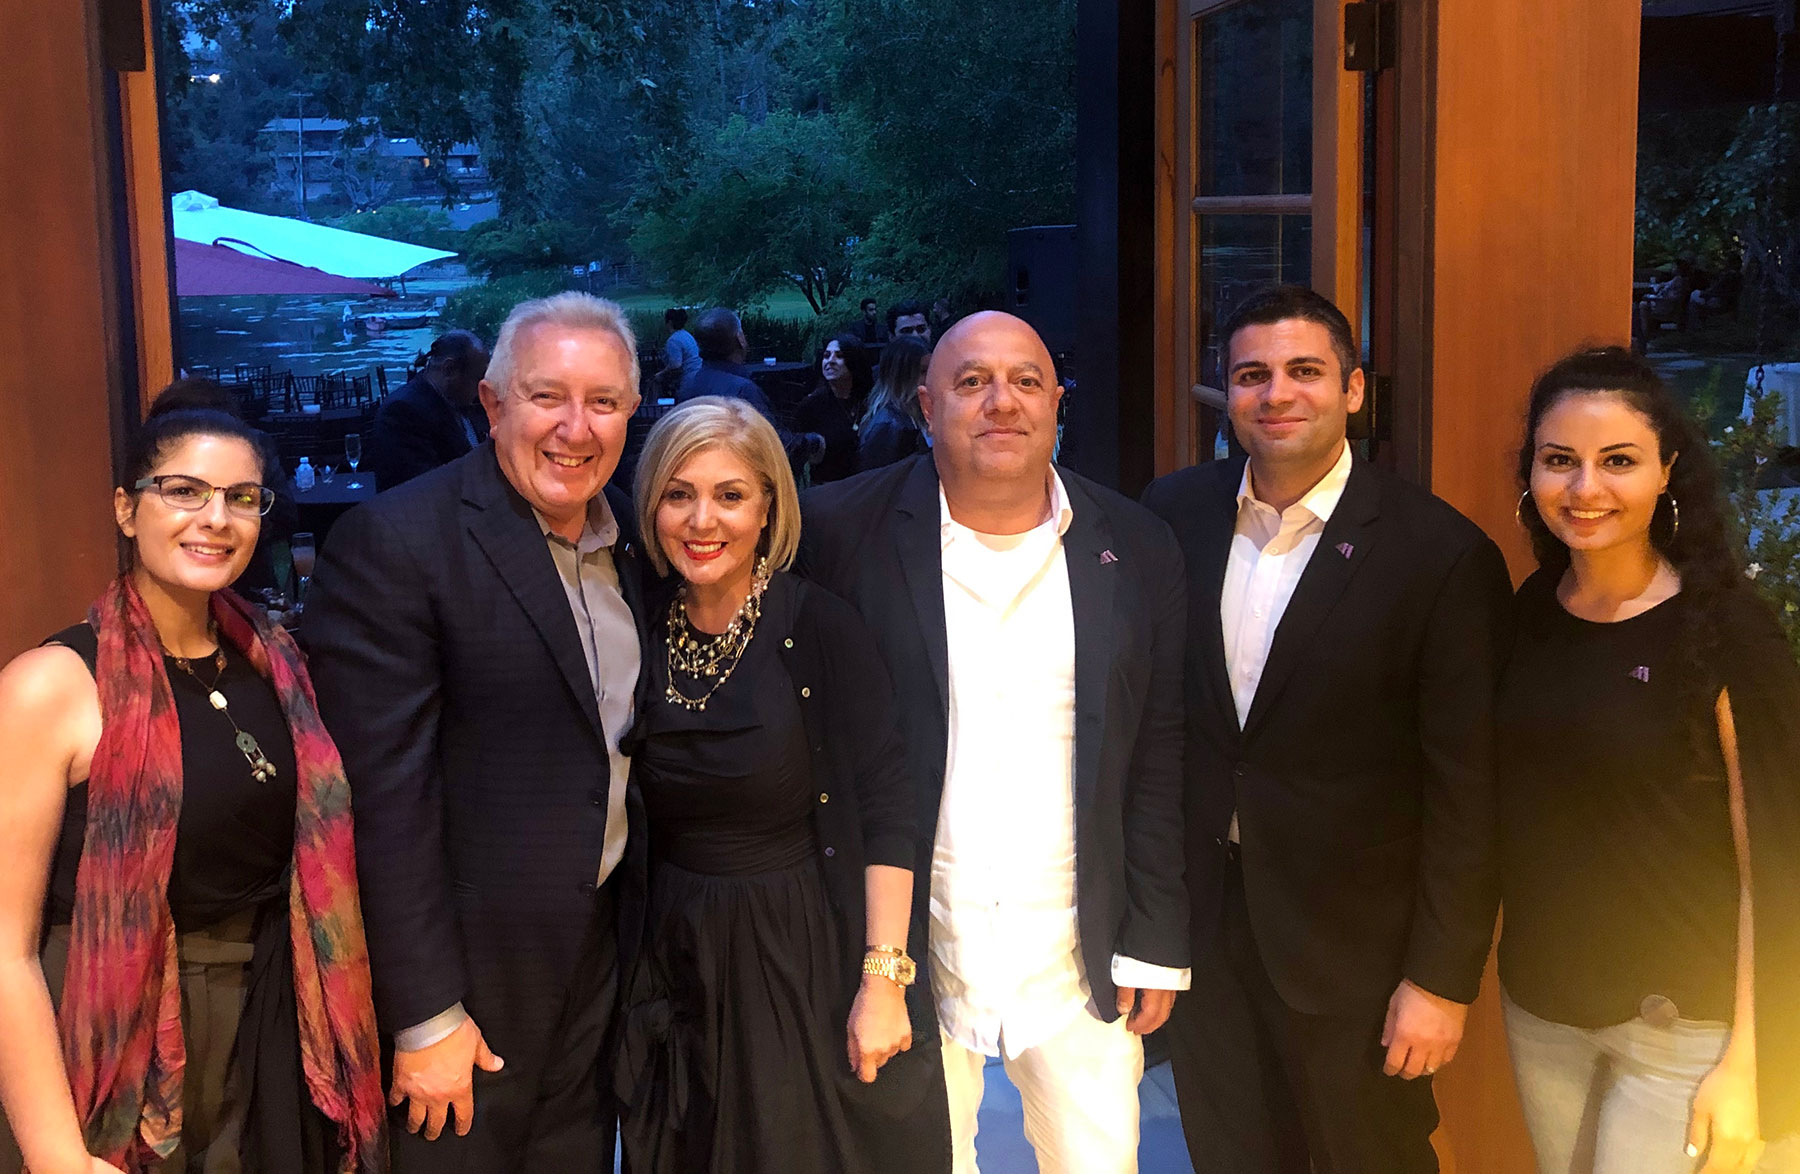 Armenian American Museum Founder's Circle Reception Hosted by Sako and Aida Gharakhani